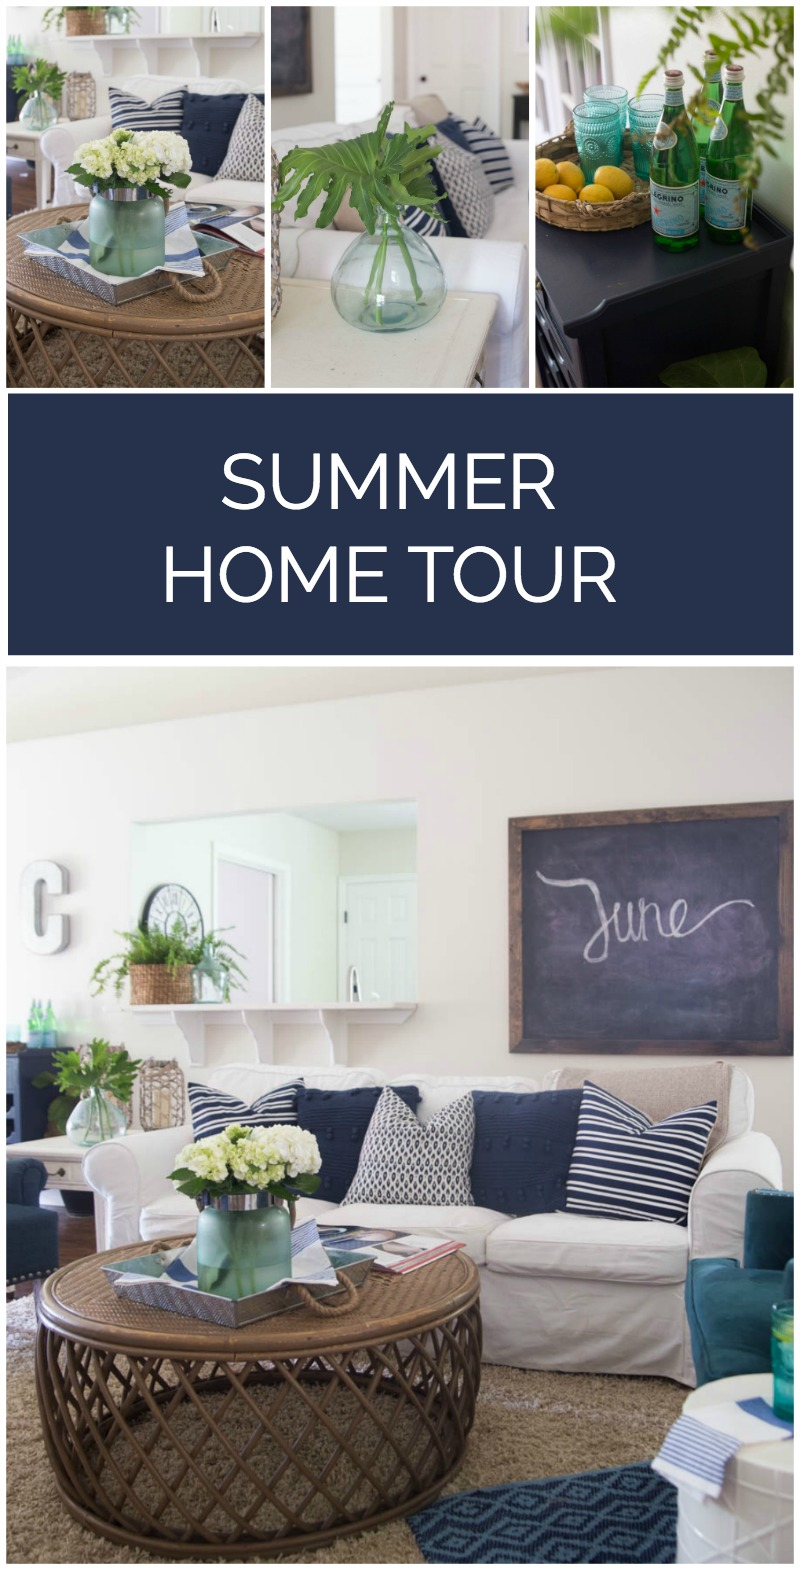 Summer Decorating Ideas - A Home Tour